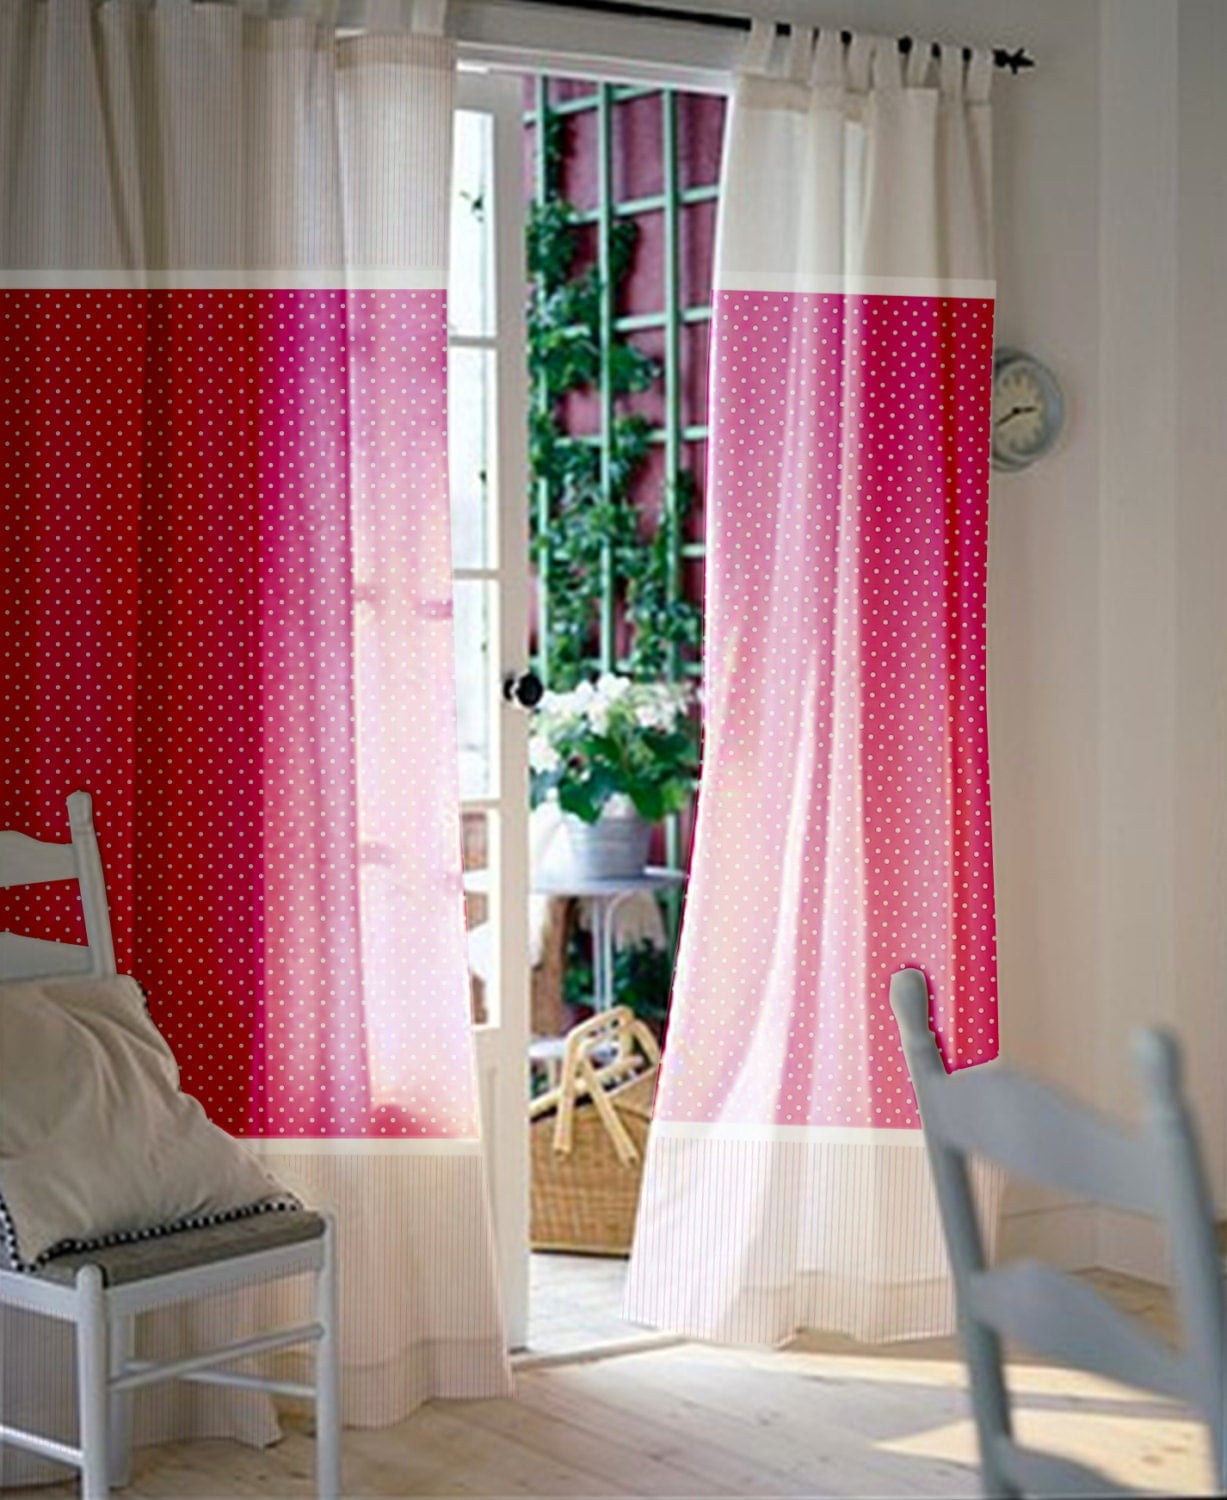 Pink and white polka dot curtains - Baby Nursery Curtains Pink Curtains Kids Curtains Pair Of 96l 46w Inch Curtain Panels With Baby Pink Polka Dot And Stripes Cotton